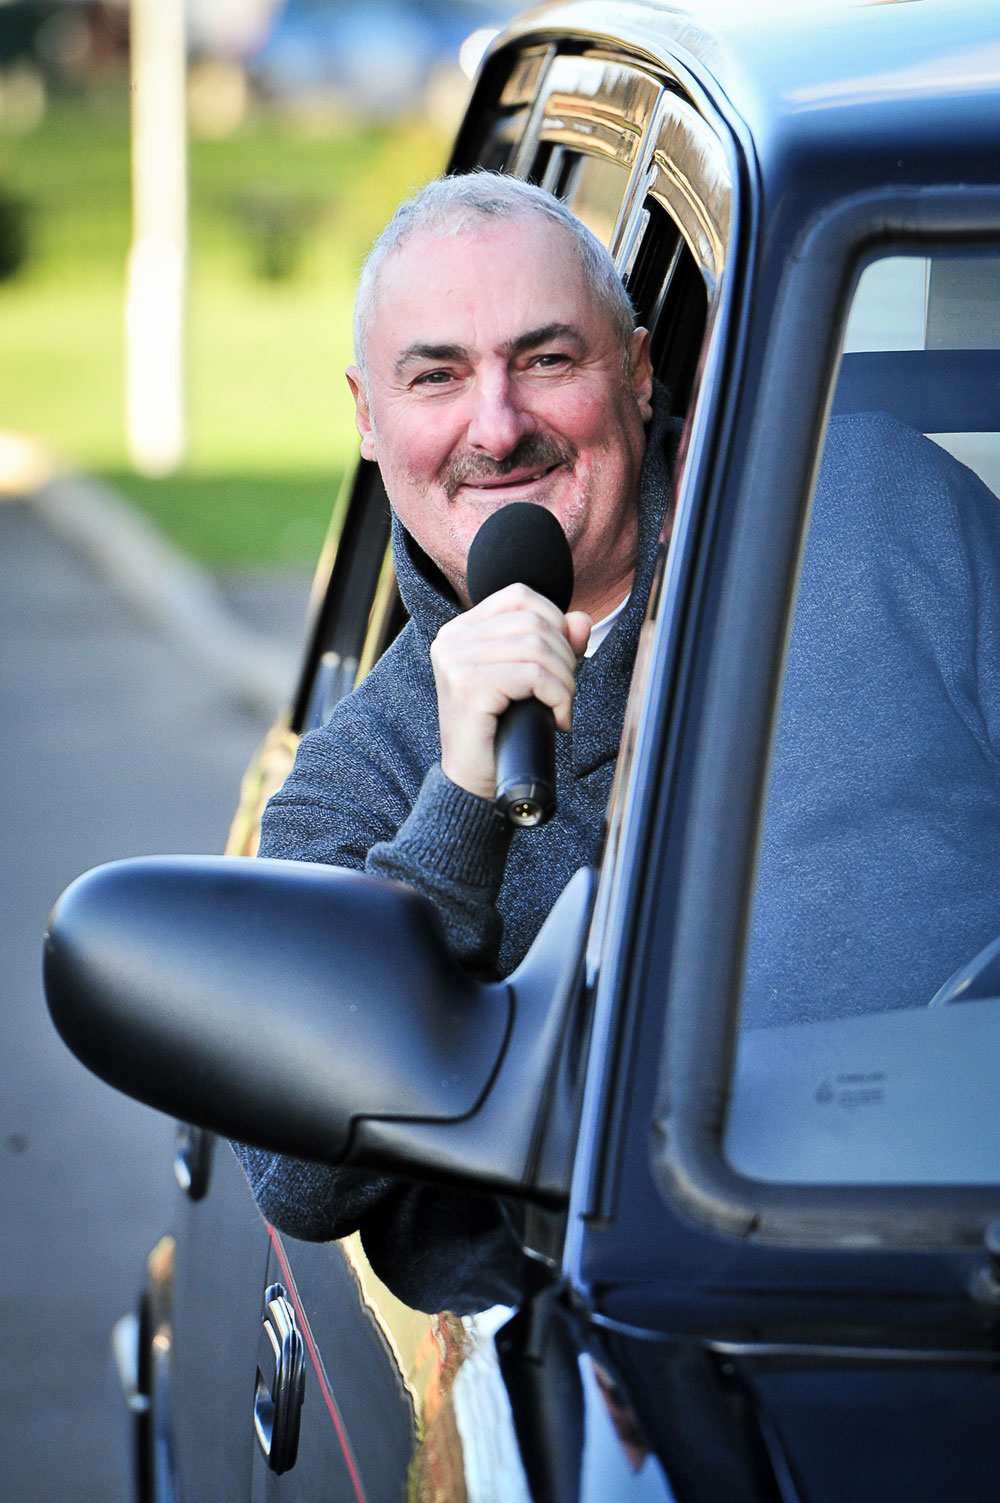 Brian has been a cabbie for over 20 years